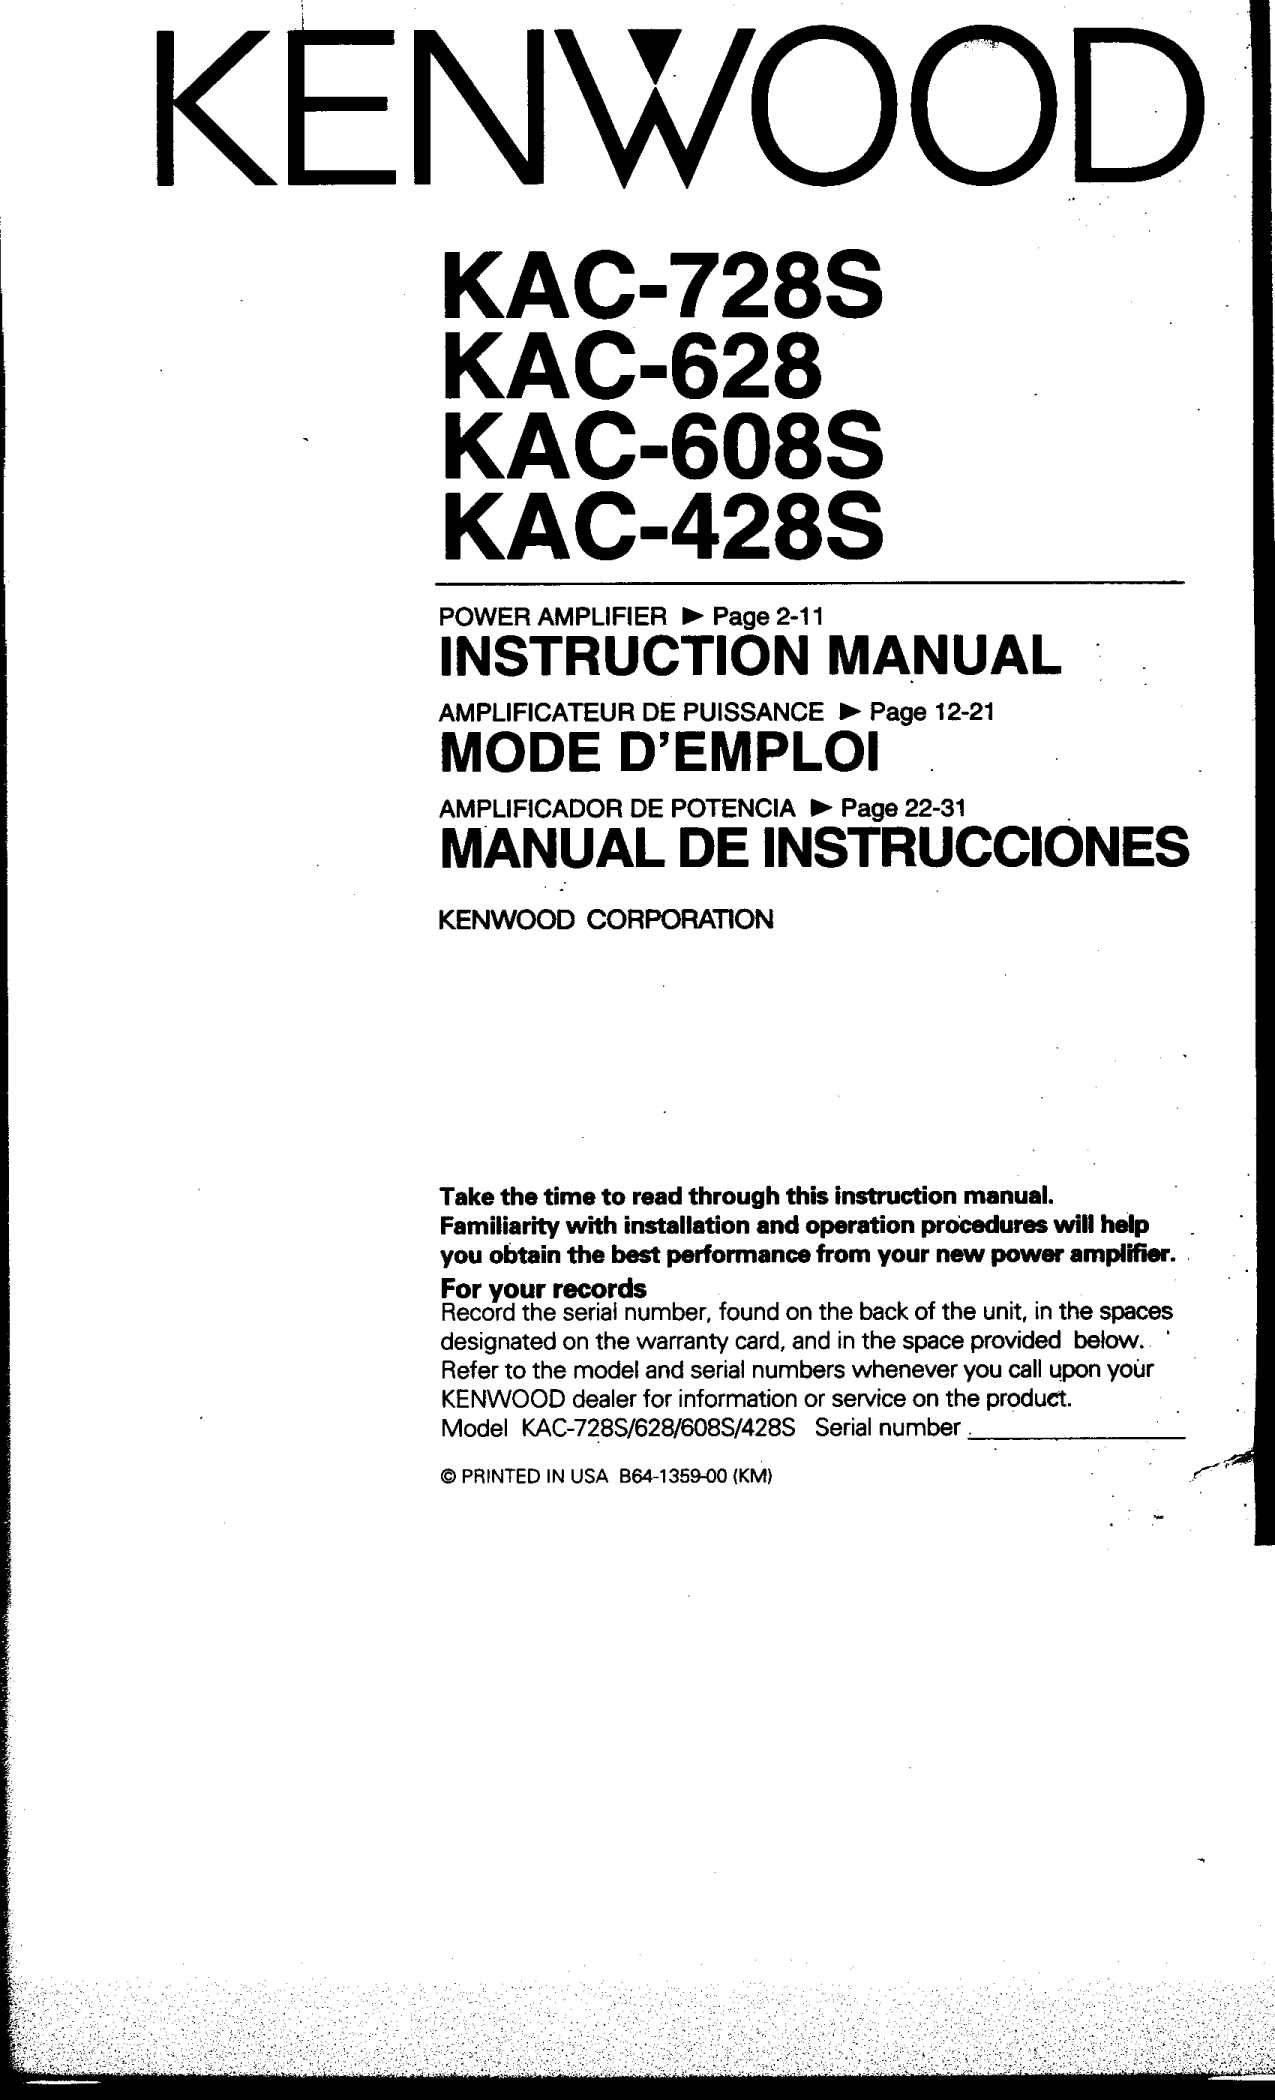 kac728s.pdf 0 download free pdf for kenwood kac 728s car amplifier manual kenwood kac 7285 wiring diagram at gsmx.co